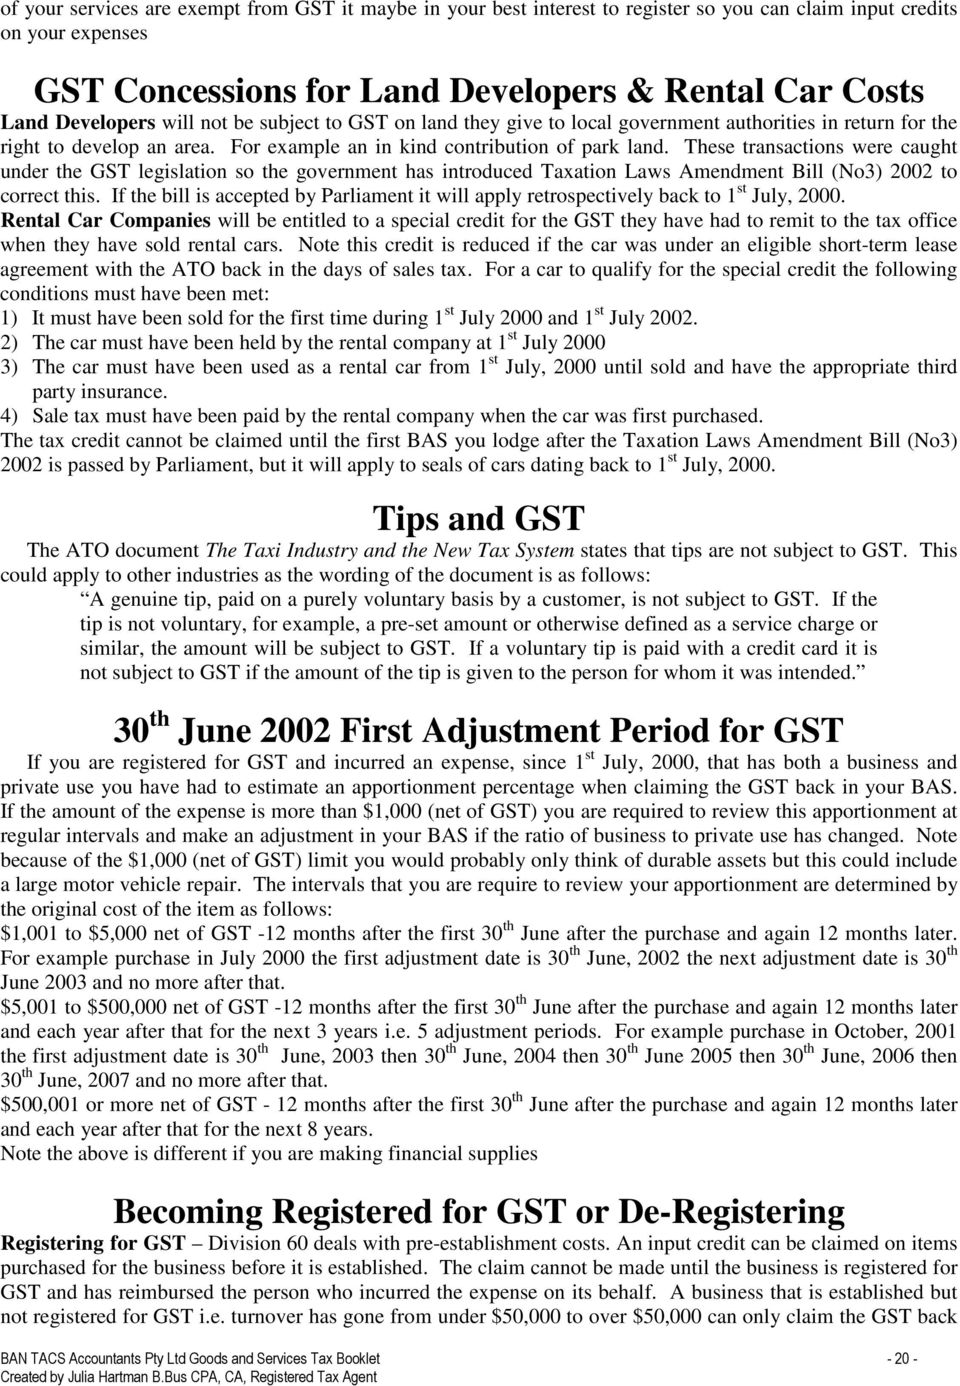 These transactions were caught under the GST legislation so the government has introduced Taxation Laws Amendment Bill (No3) 2002 to correct this.